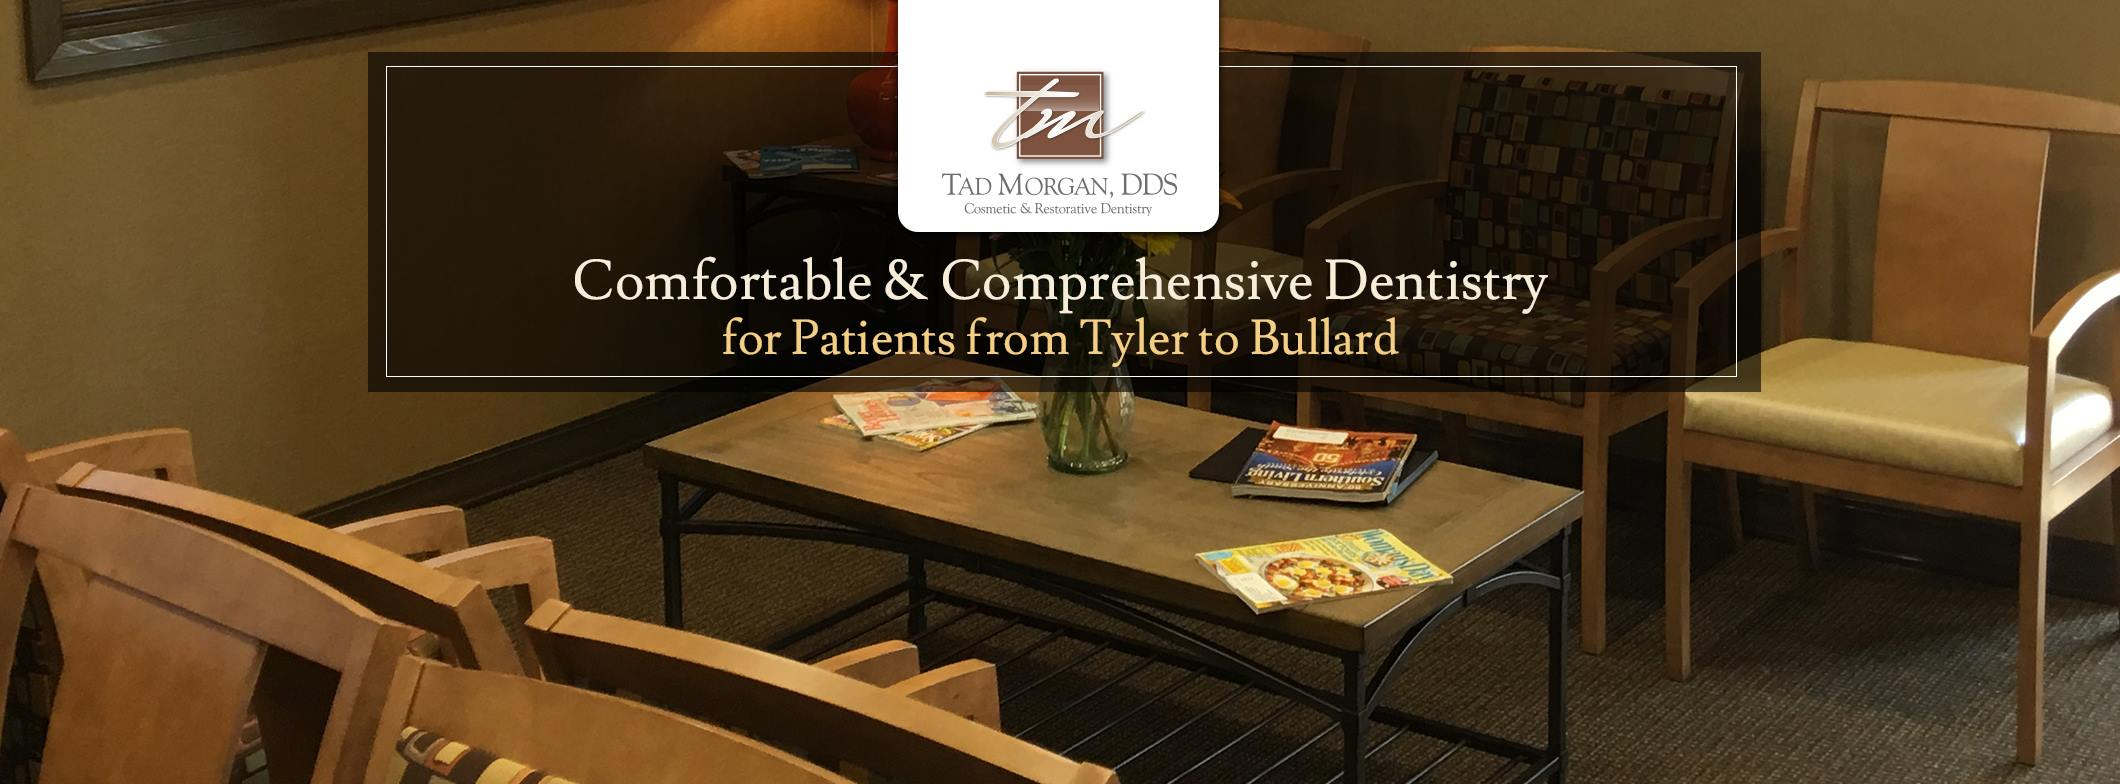 Tad Morgan, DDS reviews | Cosmetic Dentists at 16409 FM 344 West - Bullard TX